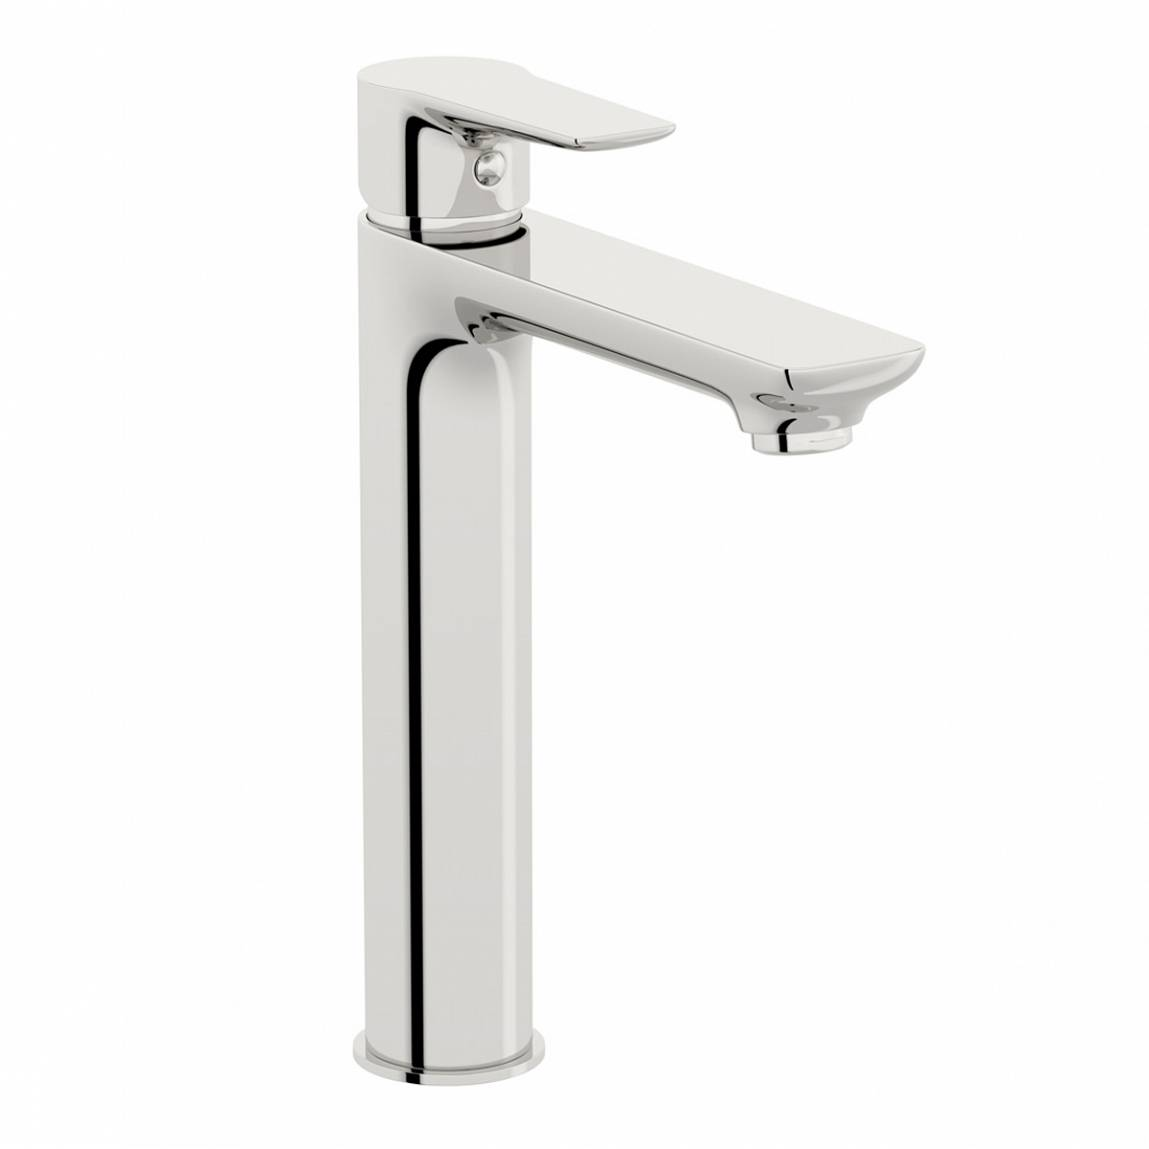 Image of Windermere High Rise Basin Mixer